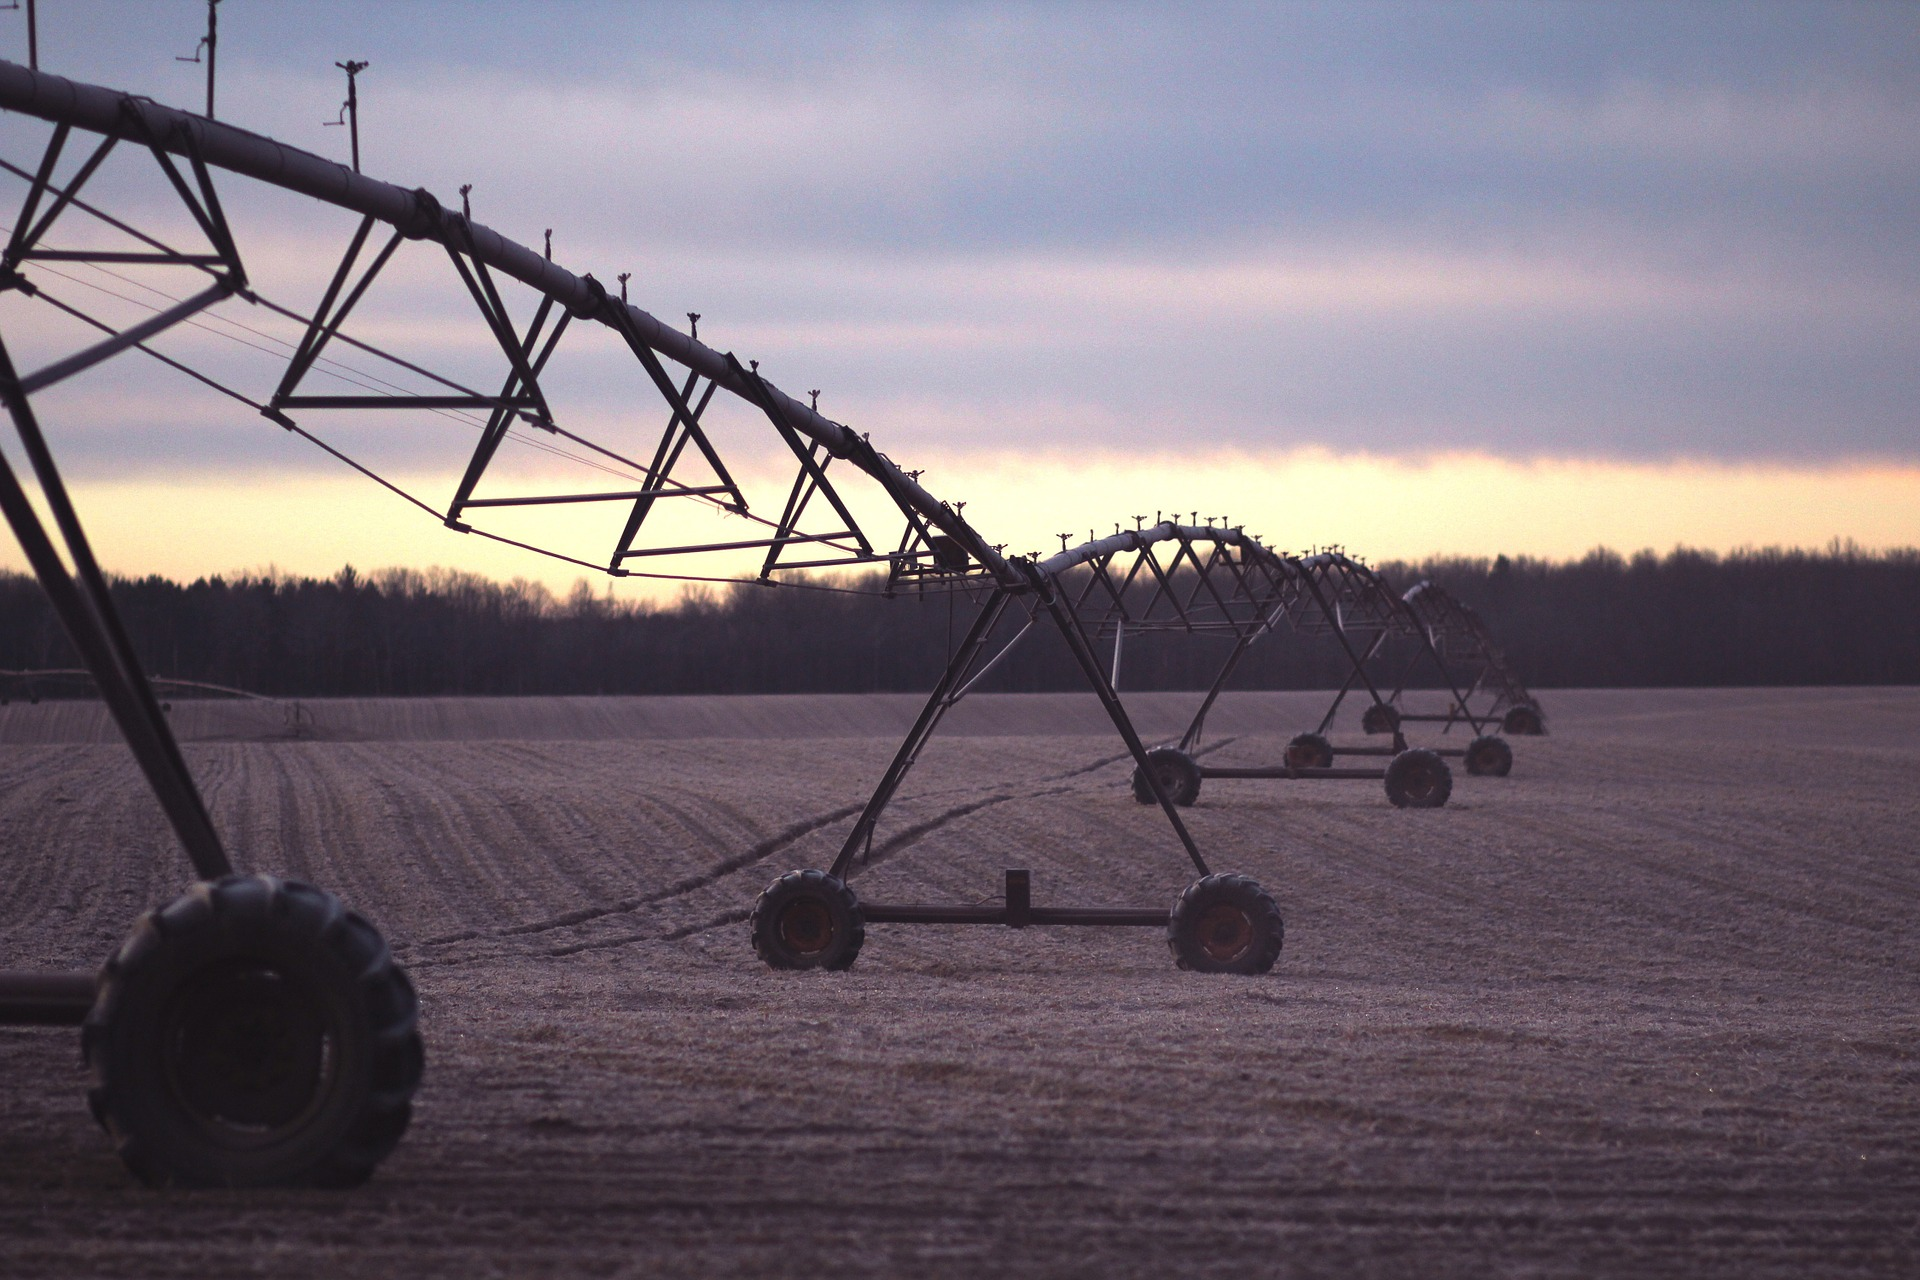 With Reinke, We Can Help Power Your Farm